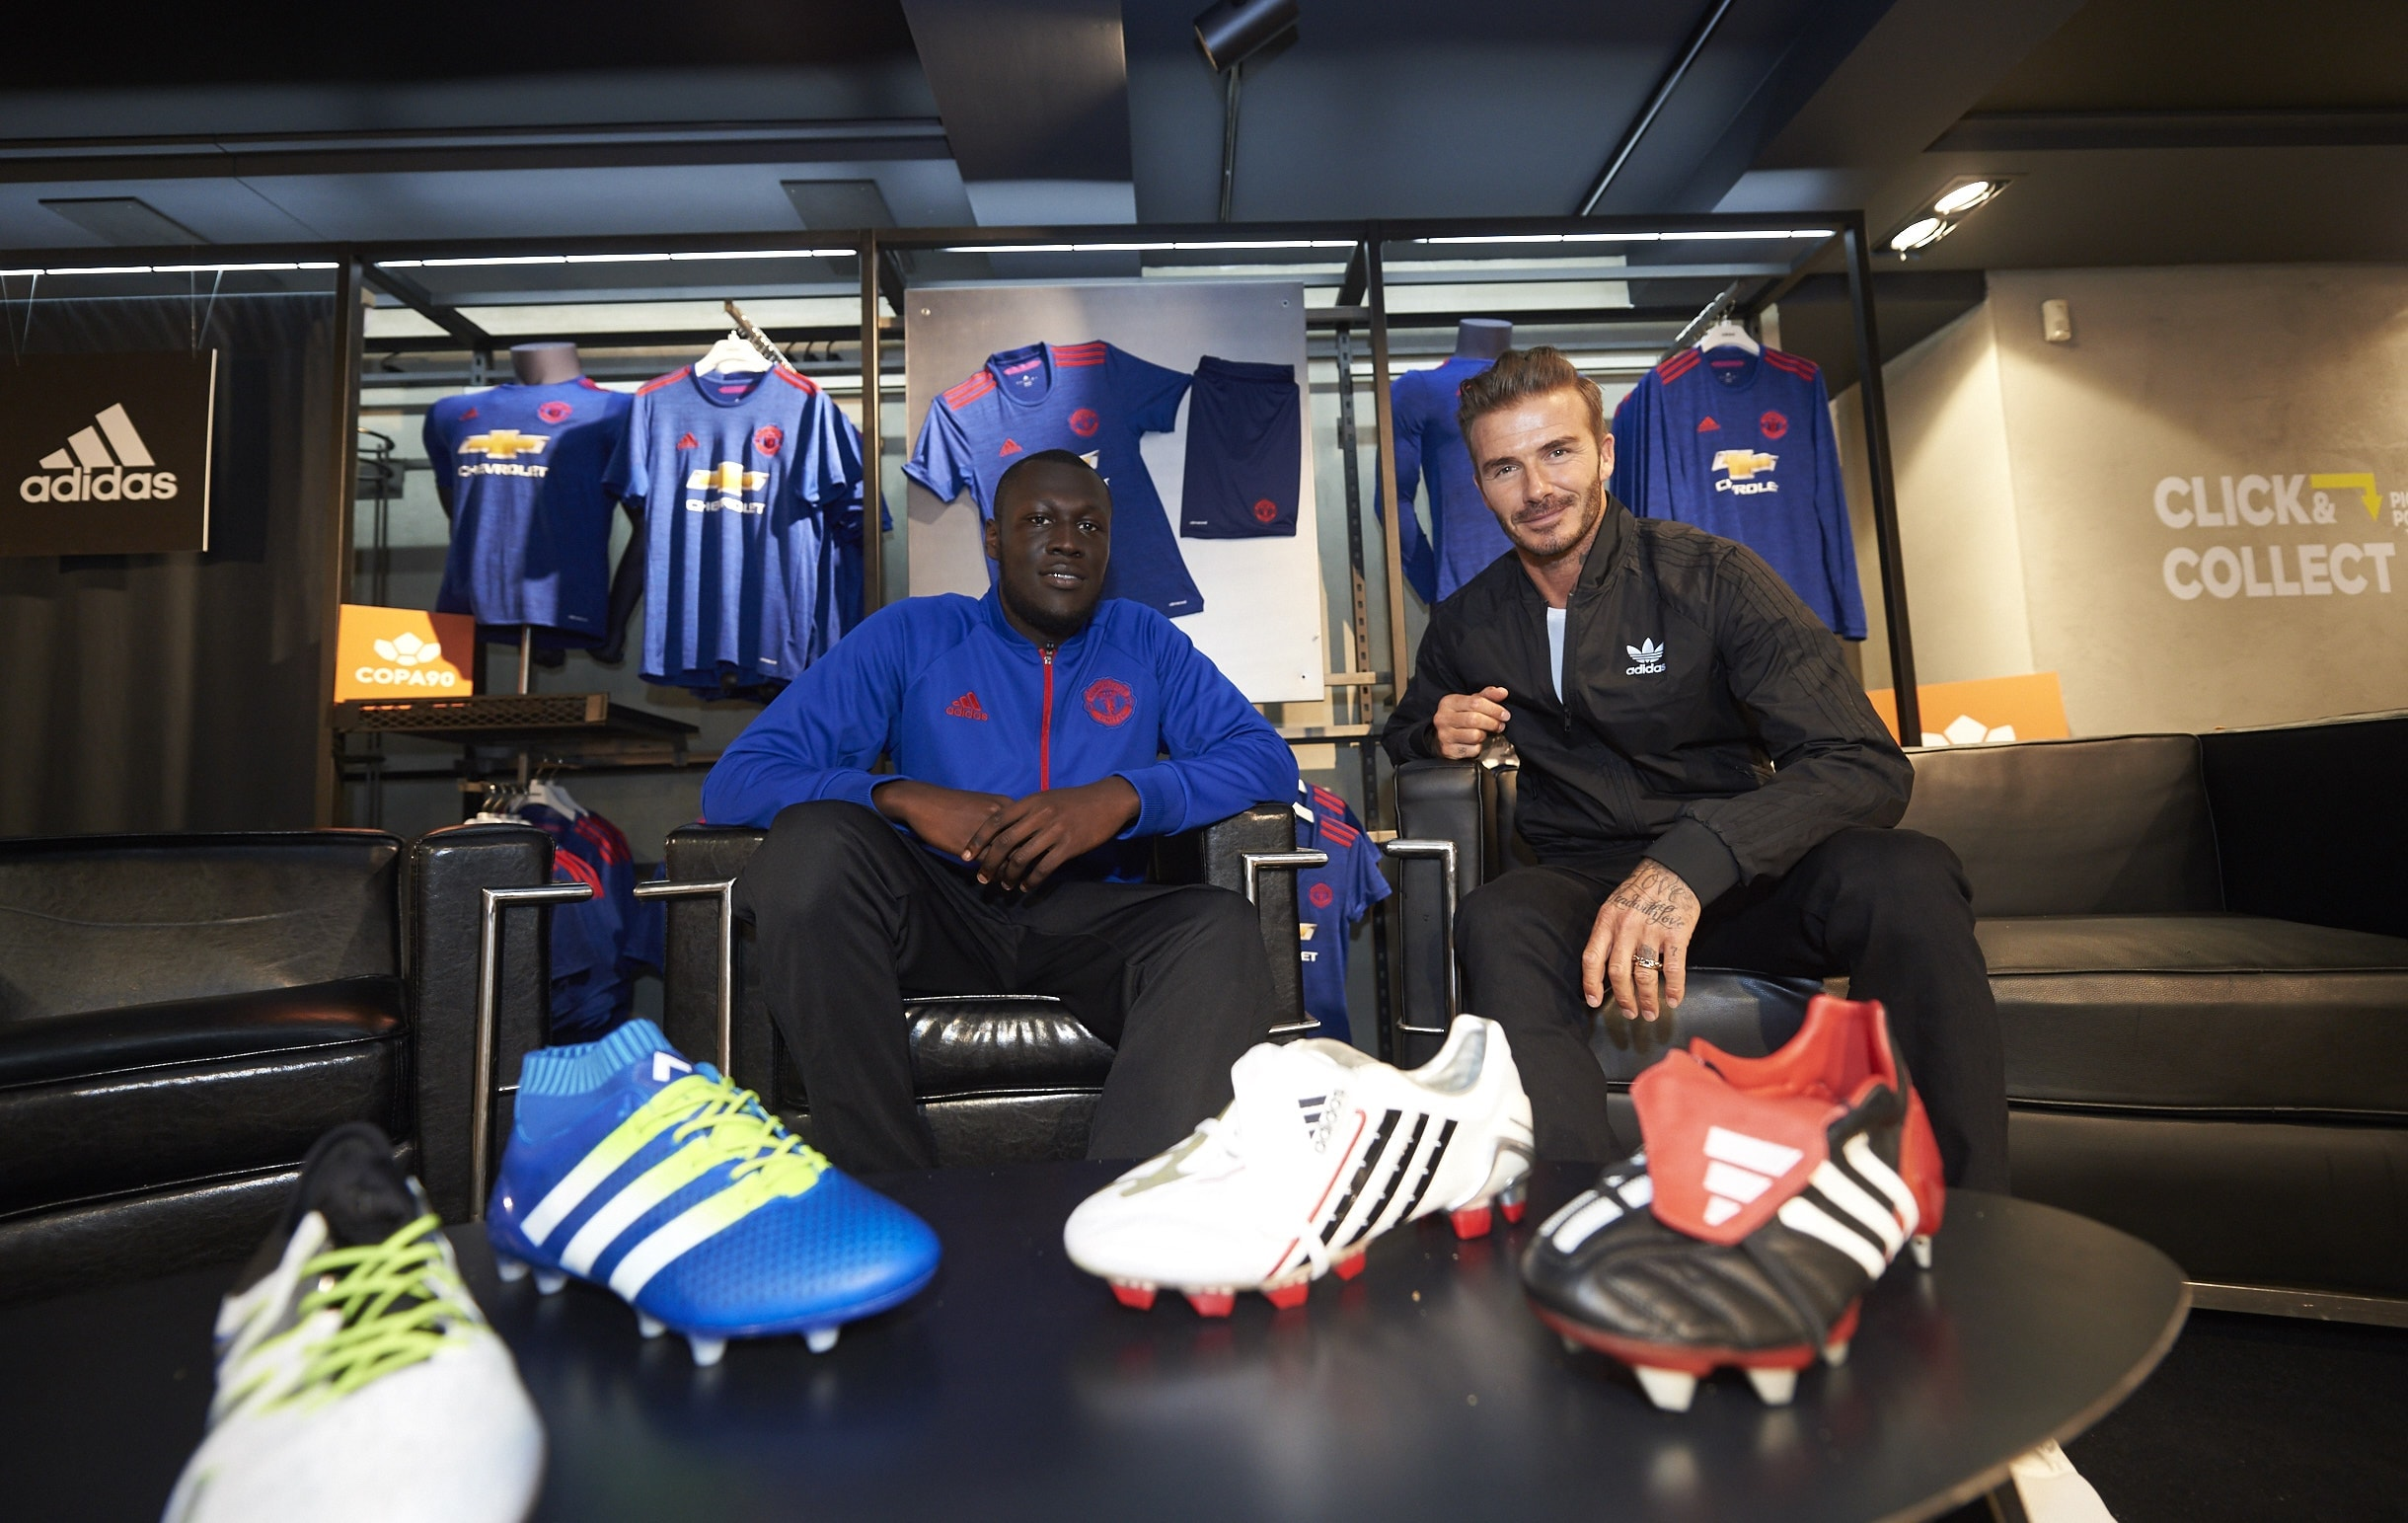 SURPRISE IN STORE: Lifelong Man Utd fan Stormzy meets his idol David Beckham on stage in the newly re-opened adidas store on Oxford Street (Credit: Ben Duffy / adidas UK)